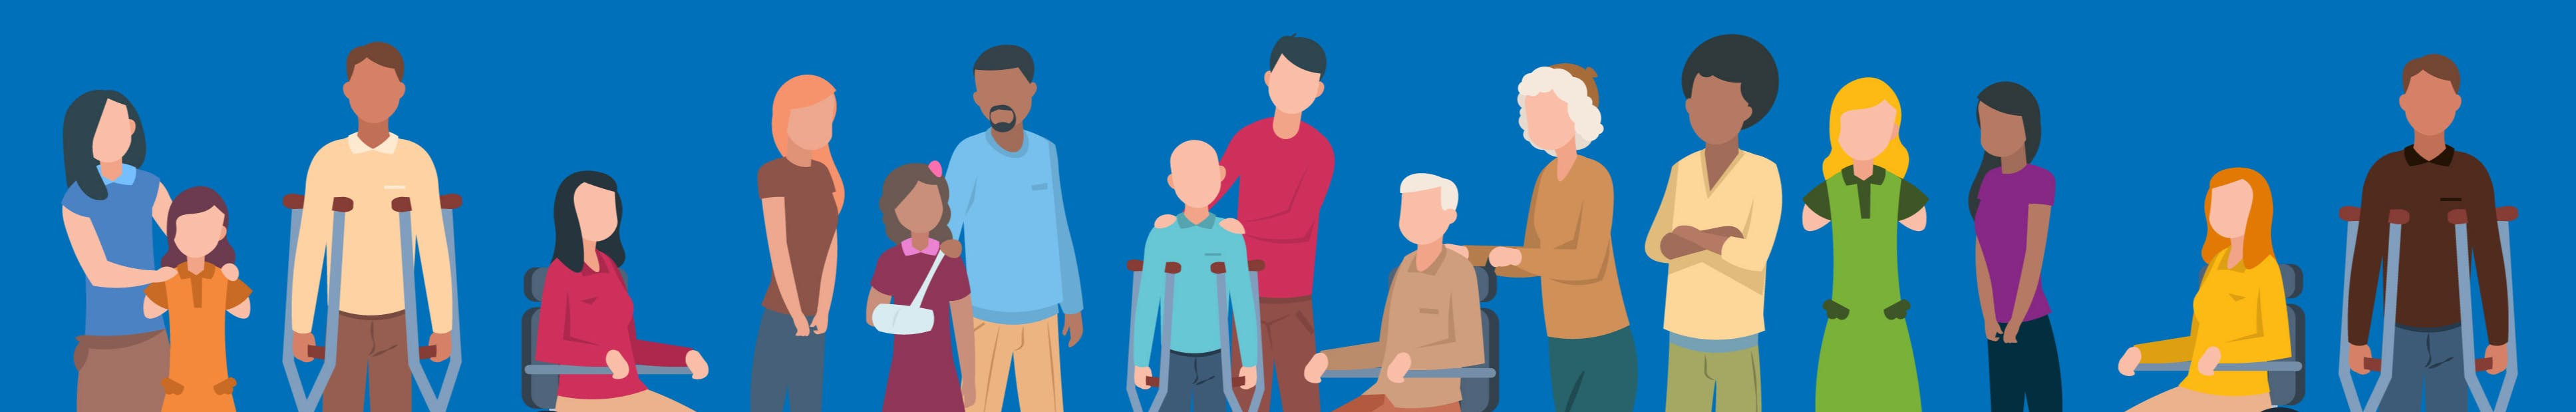 Digital illustration of diverse group of people with disabilities